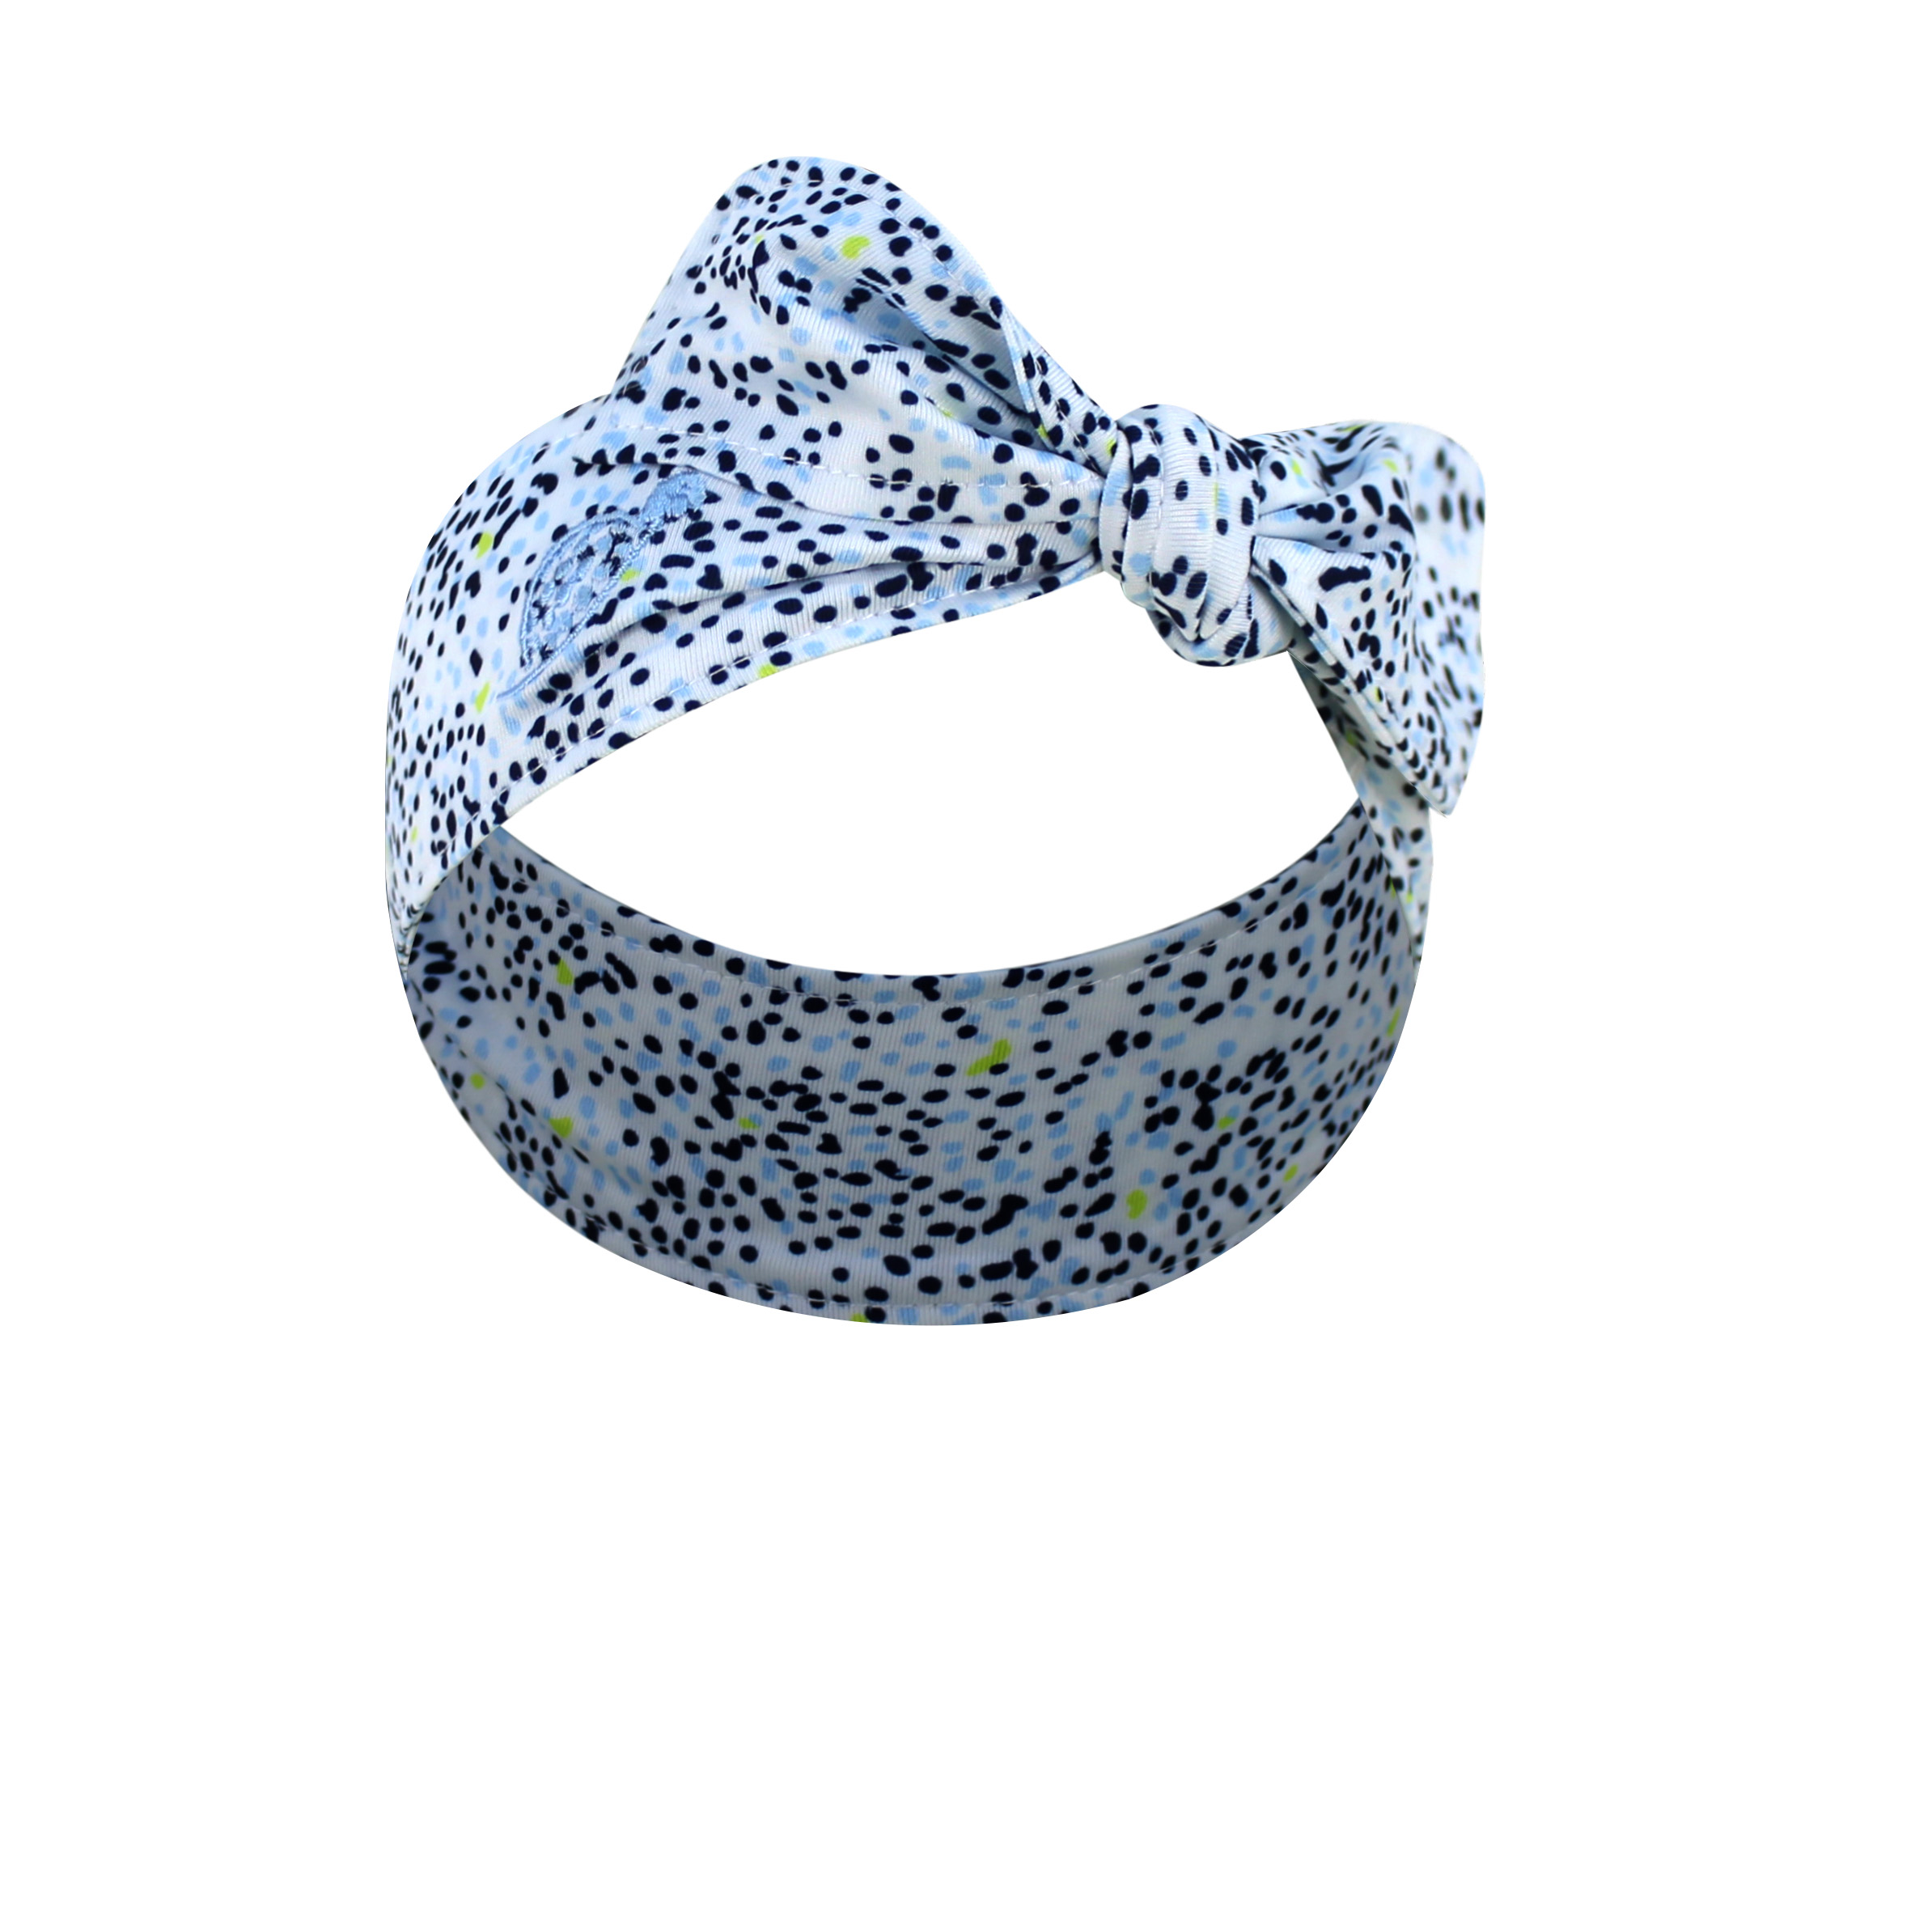 Infant/Toddler Headband Blue Spot The Hole